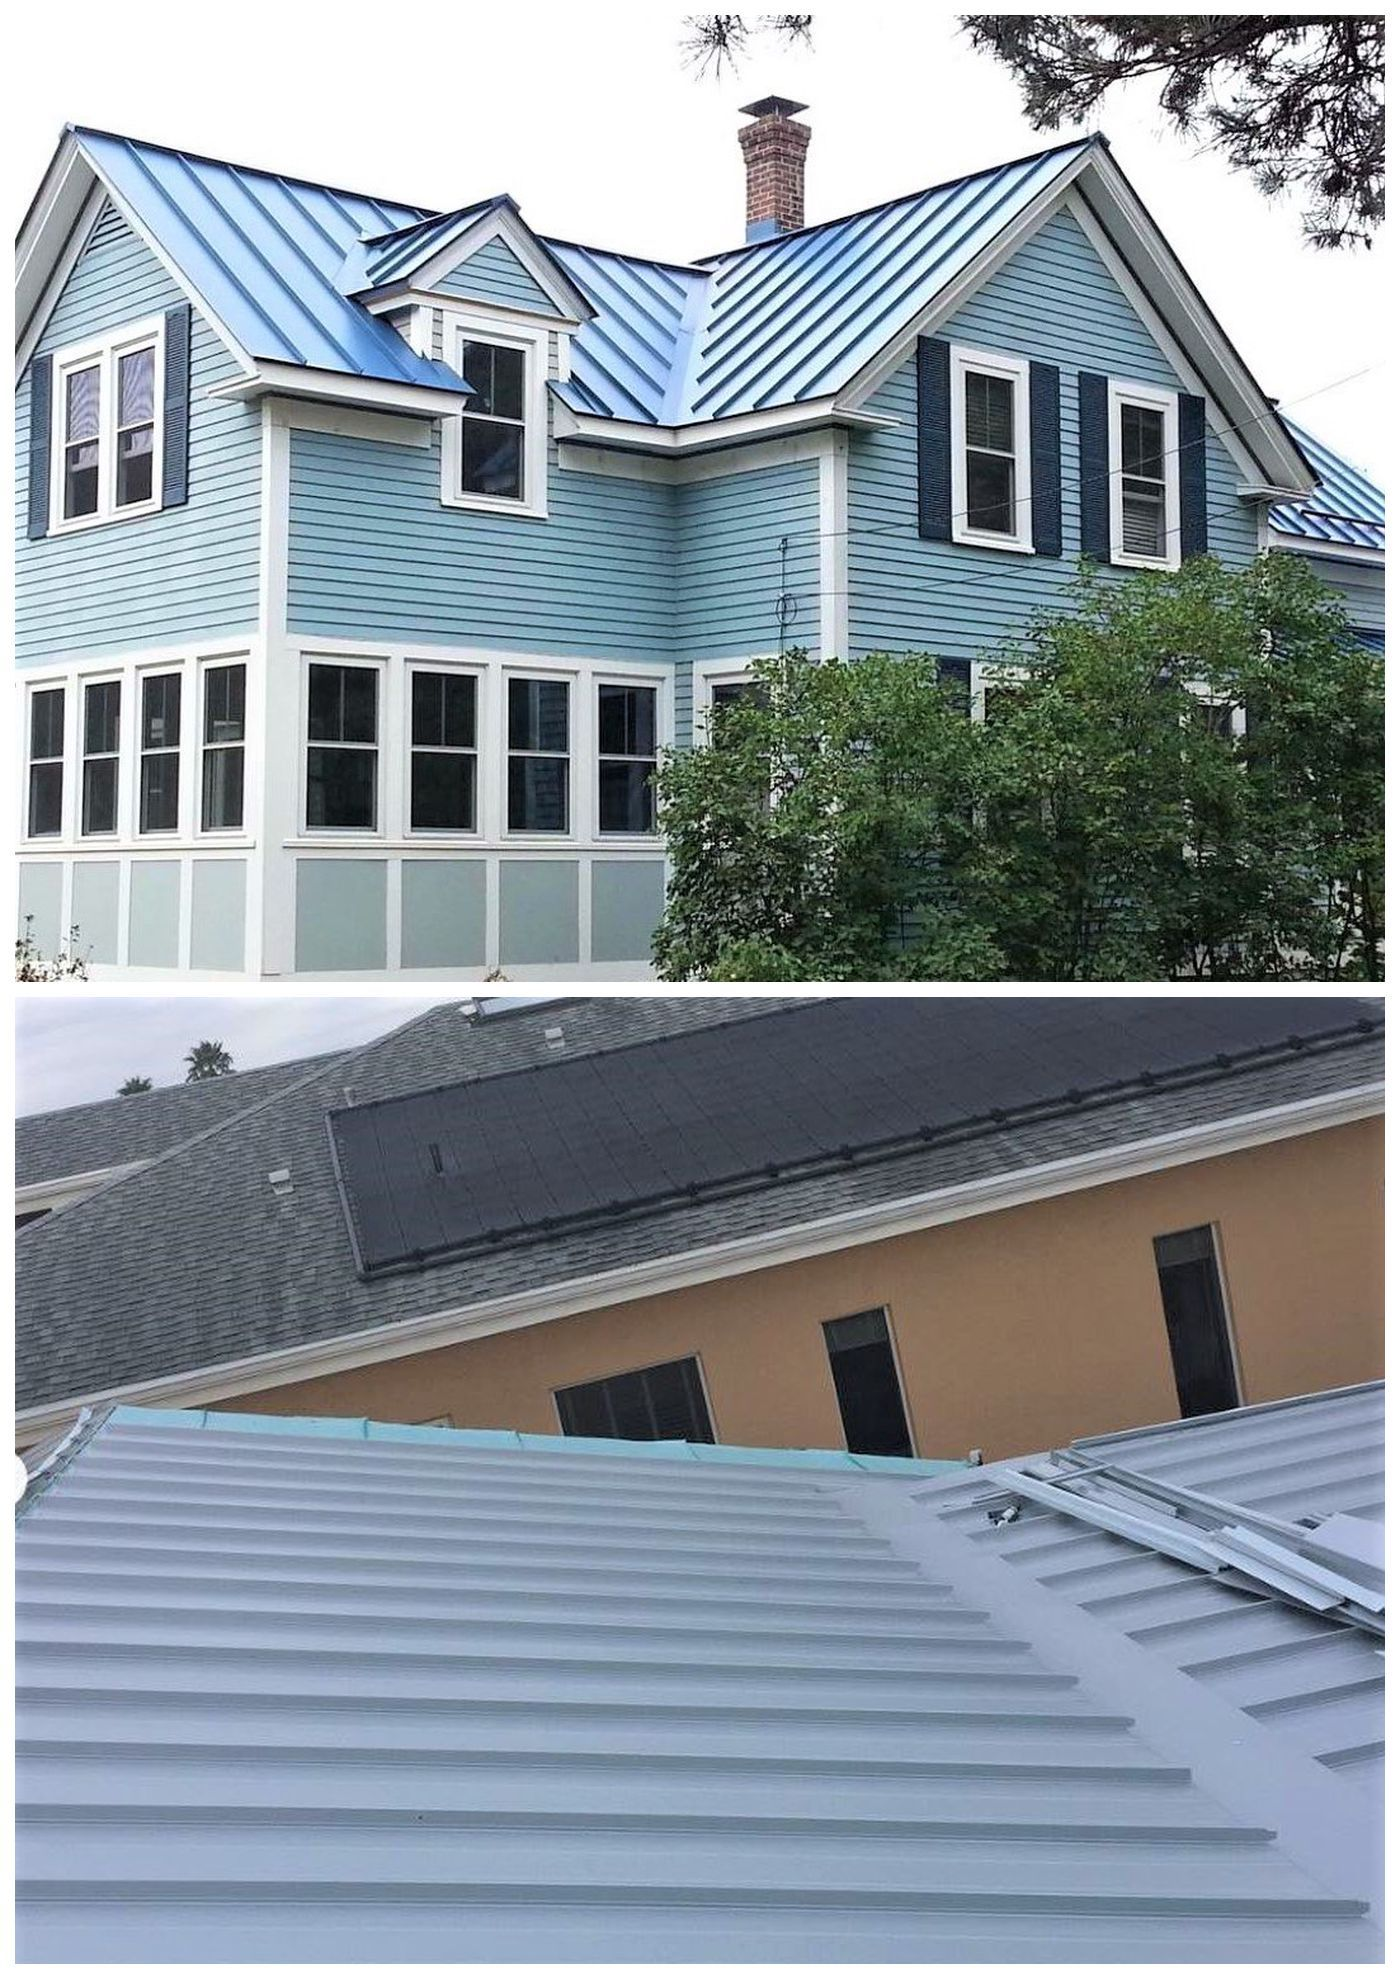 Below You Will Learn About Aluminum Standing Seam Metal Roof Cost Metalroof Metalroofing Metalroofs St Standing Seam Metal Roof Metal Roof Cost Roof Cost